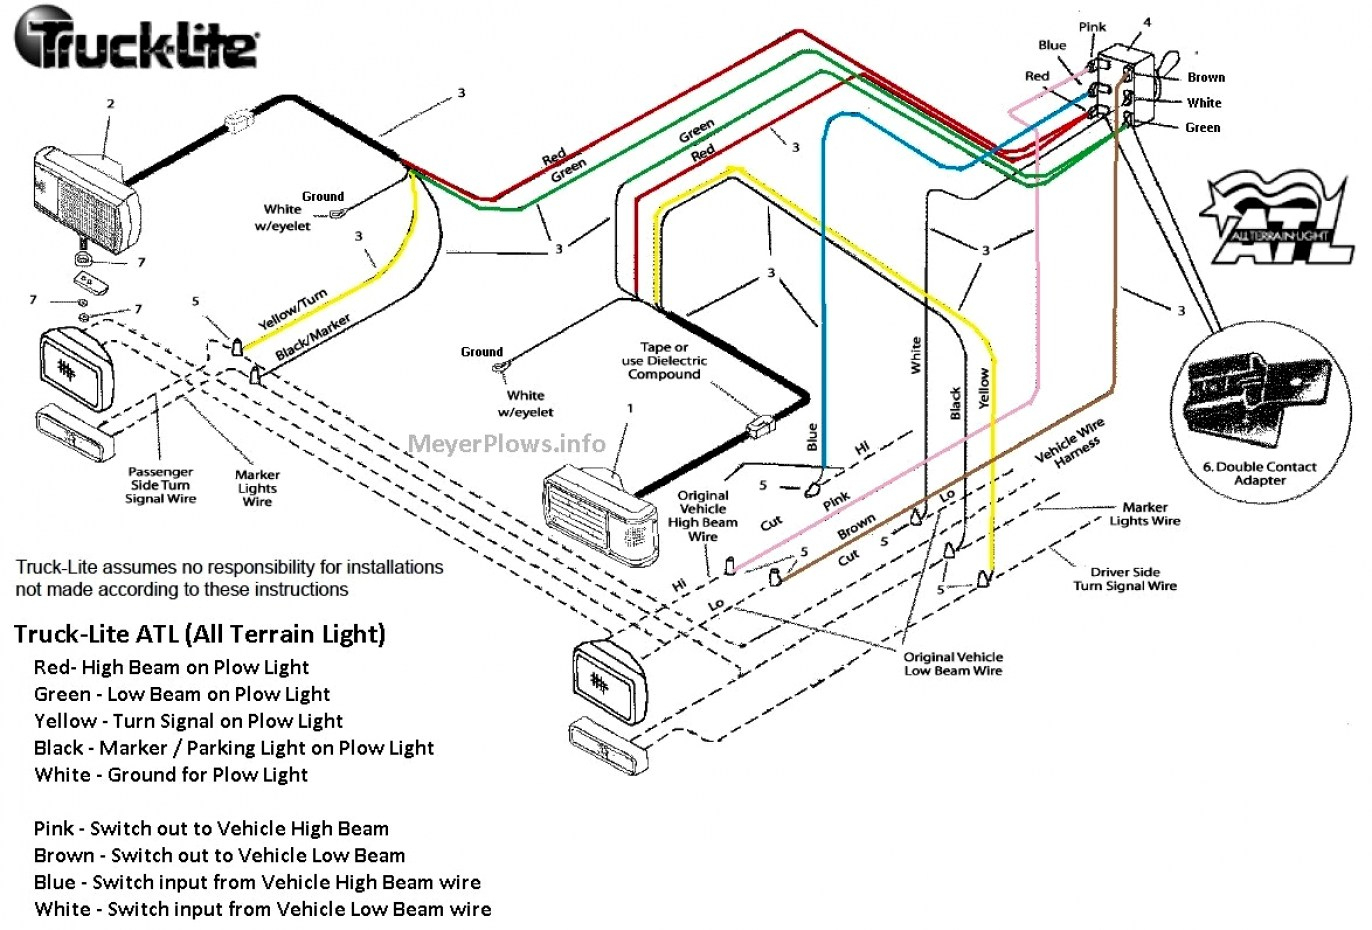 Northman Snow Plow Wiring Diagram - Today Wiring Diagram - Meyer Snow Plow Wiring Diagram